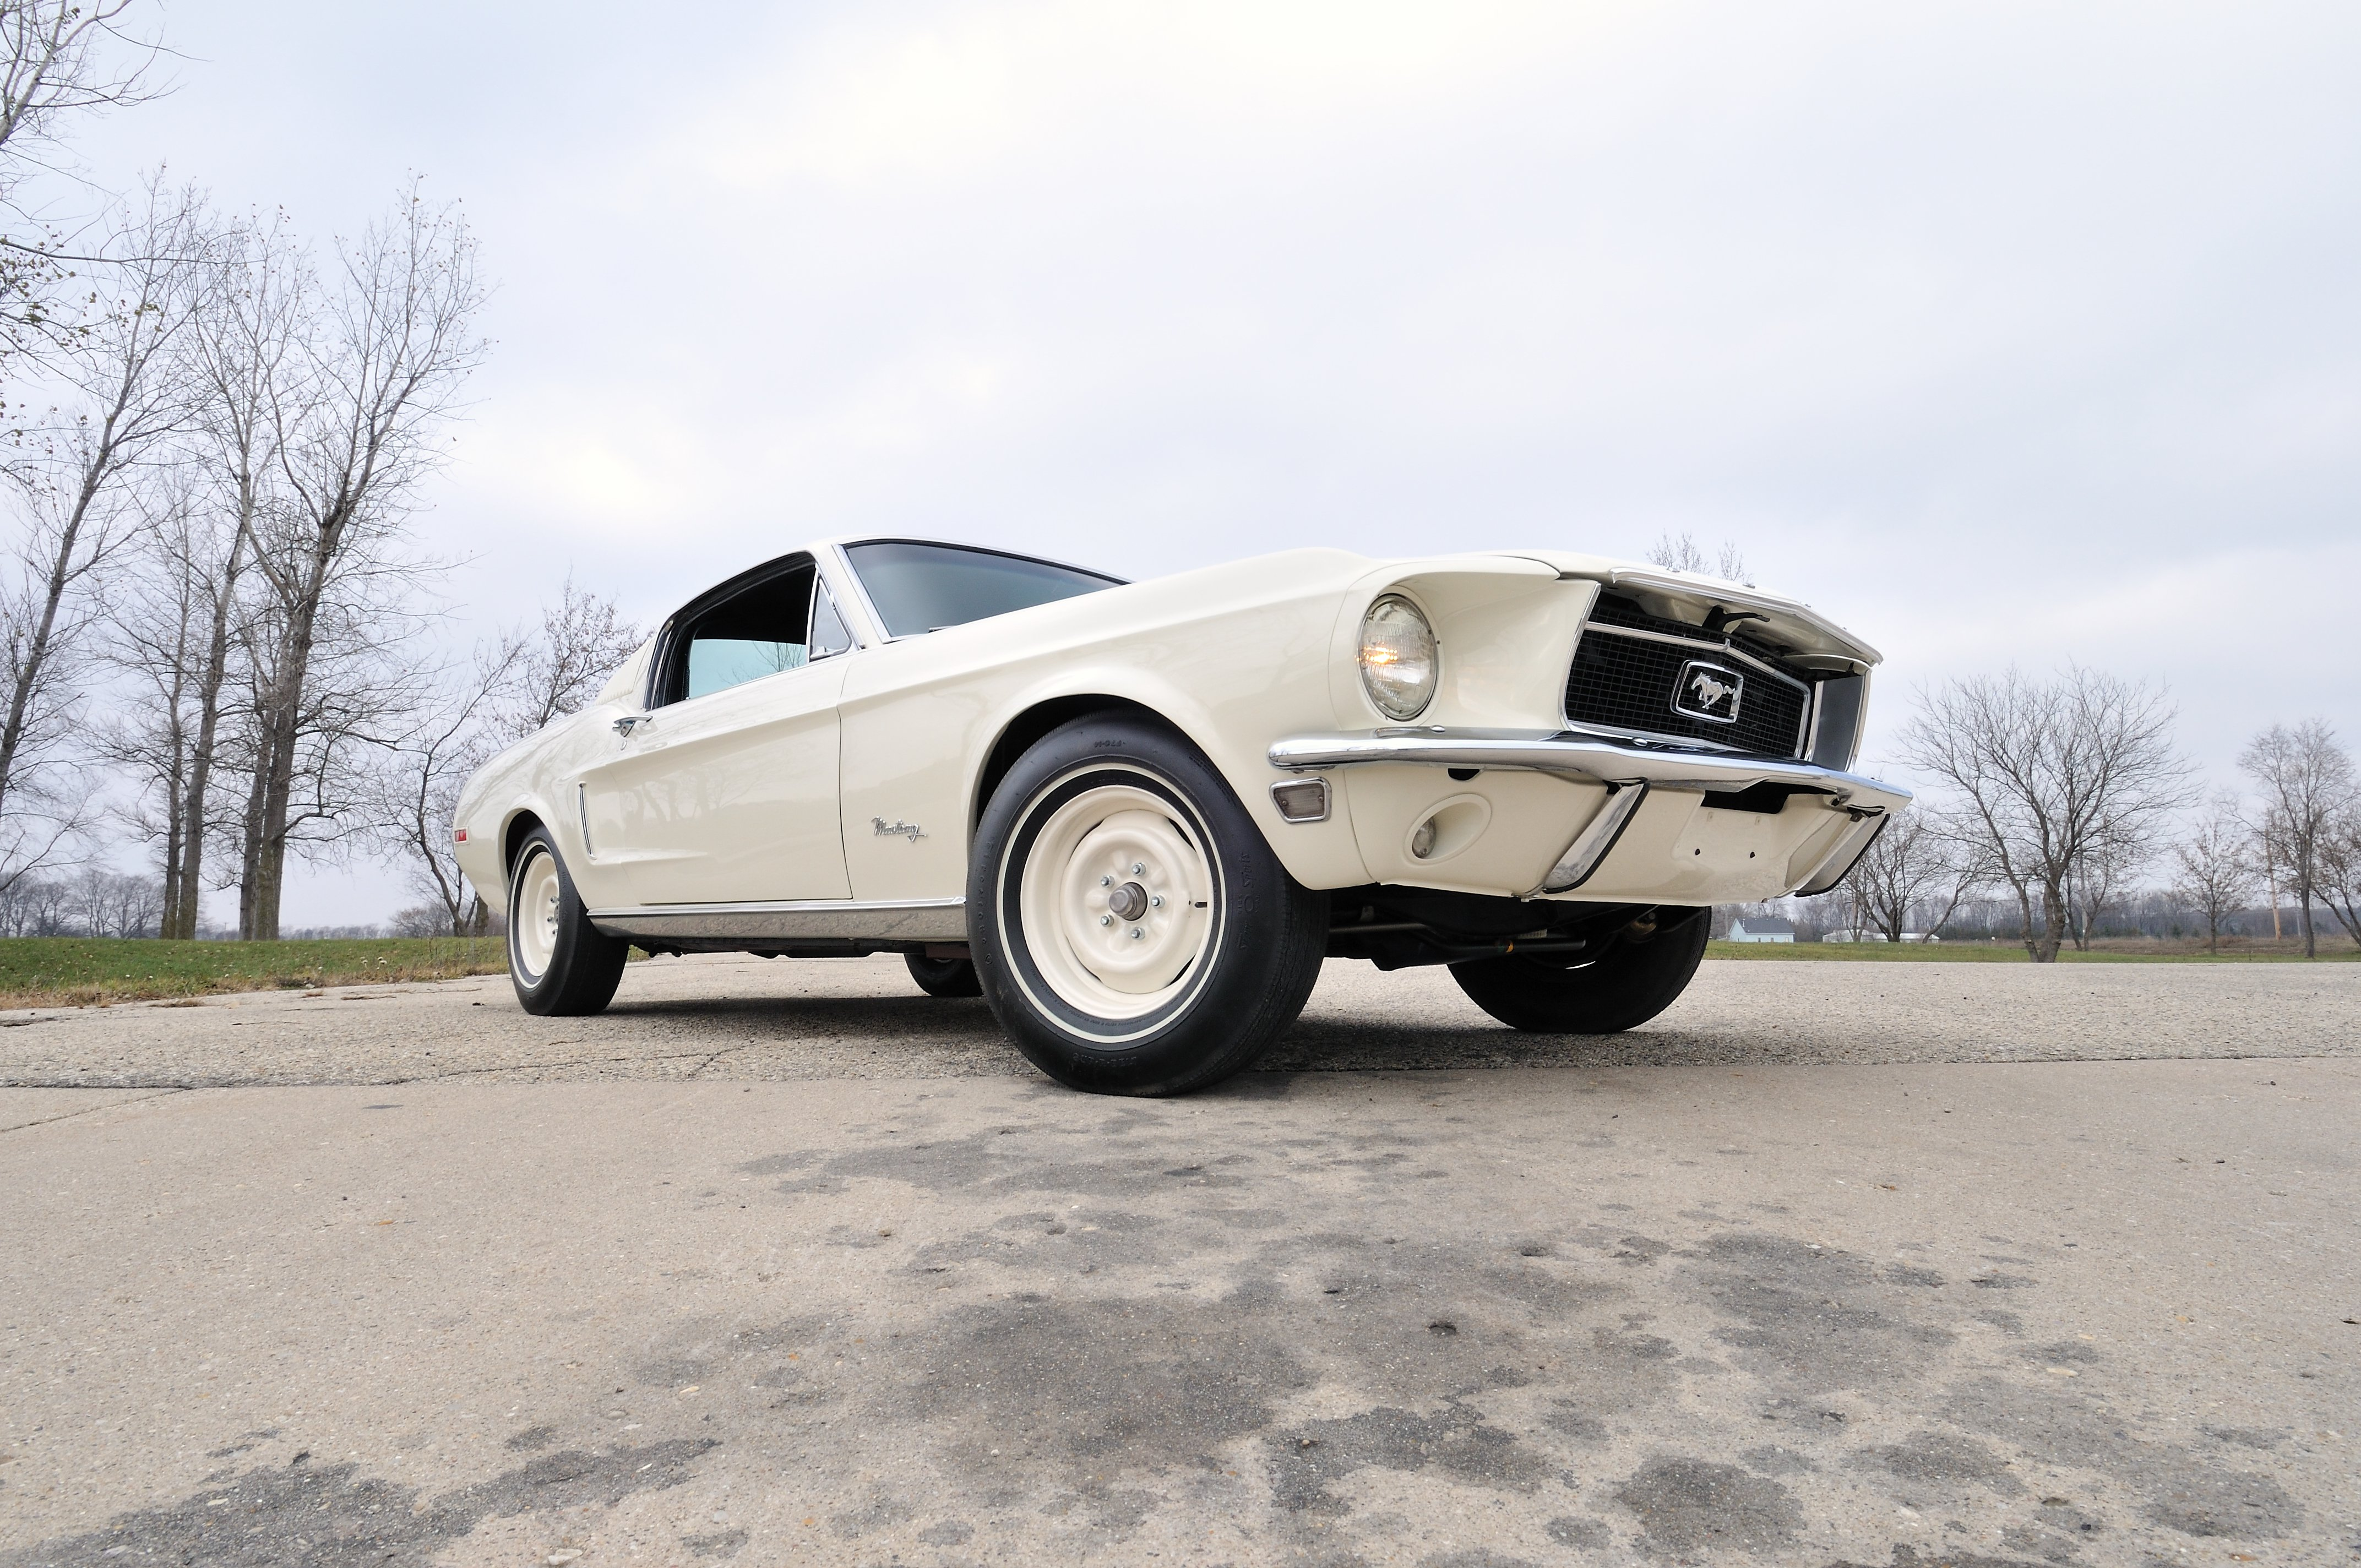 1968 ford mustang lightweight white muscle classic old usa 4288x2848 05 wallpaper 4288x2848 653811 wallpaperup